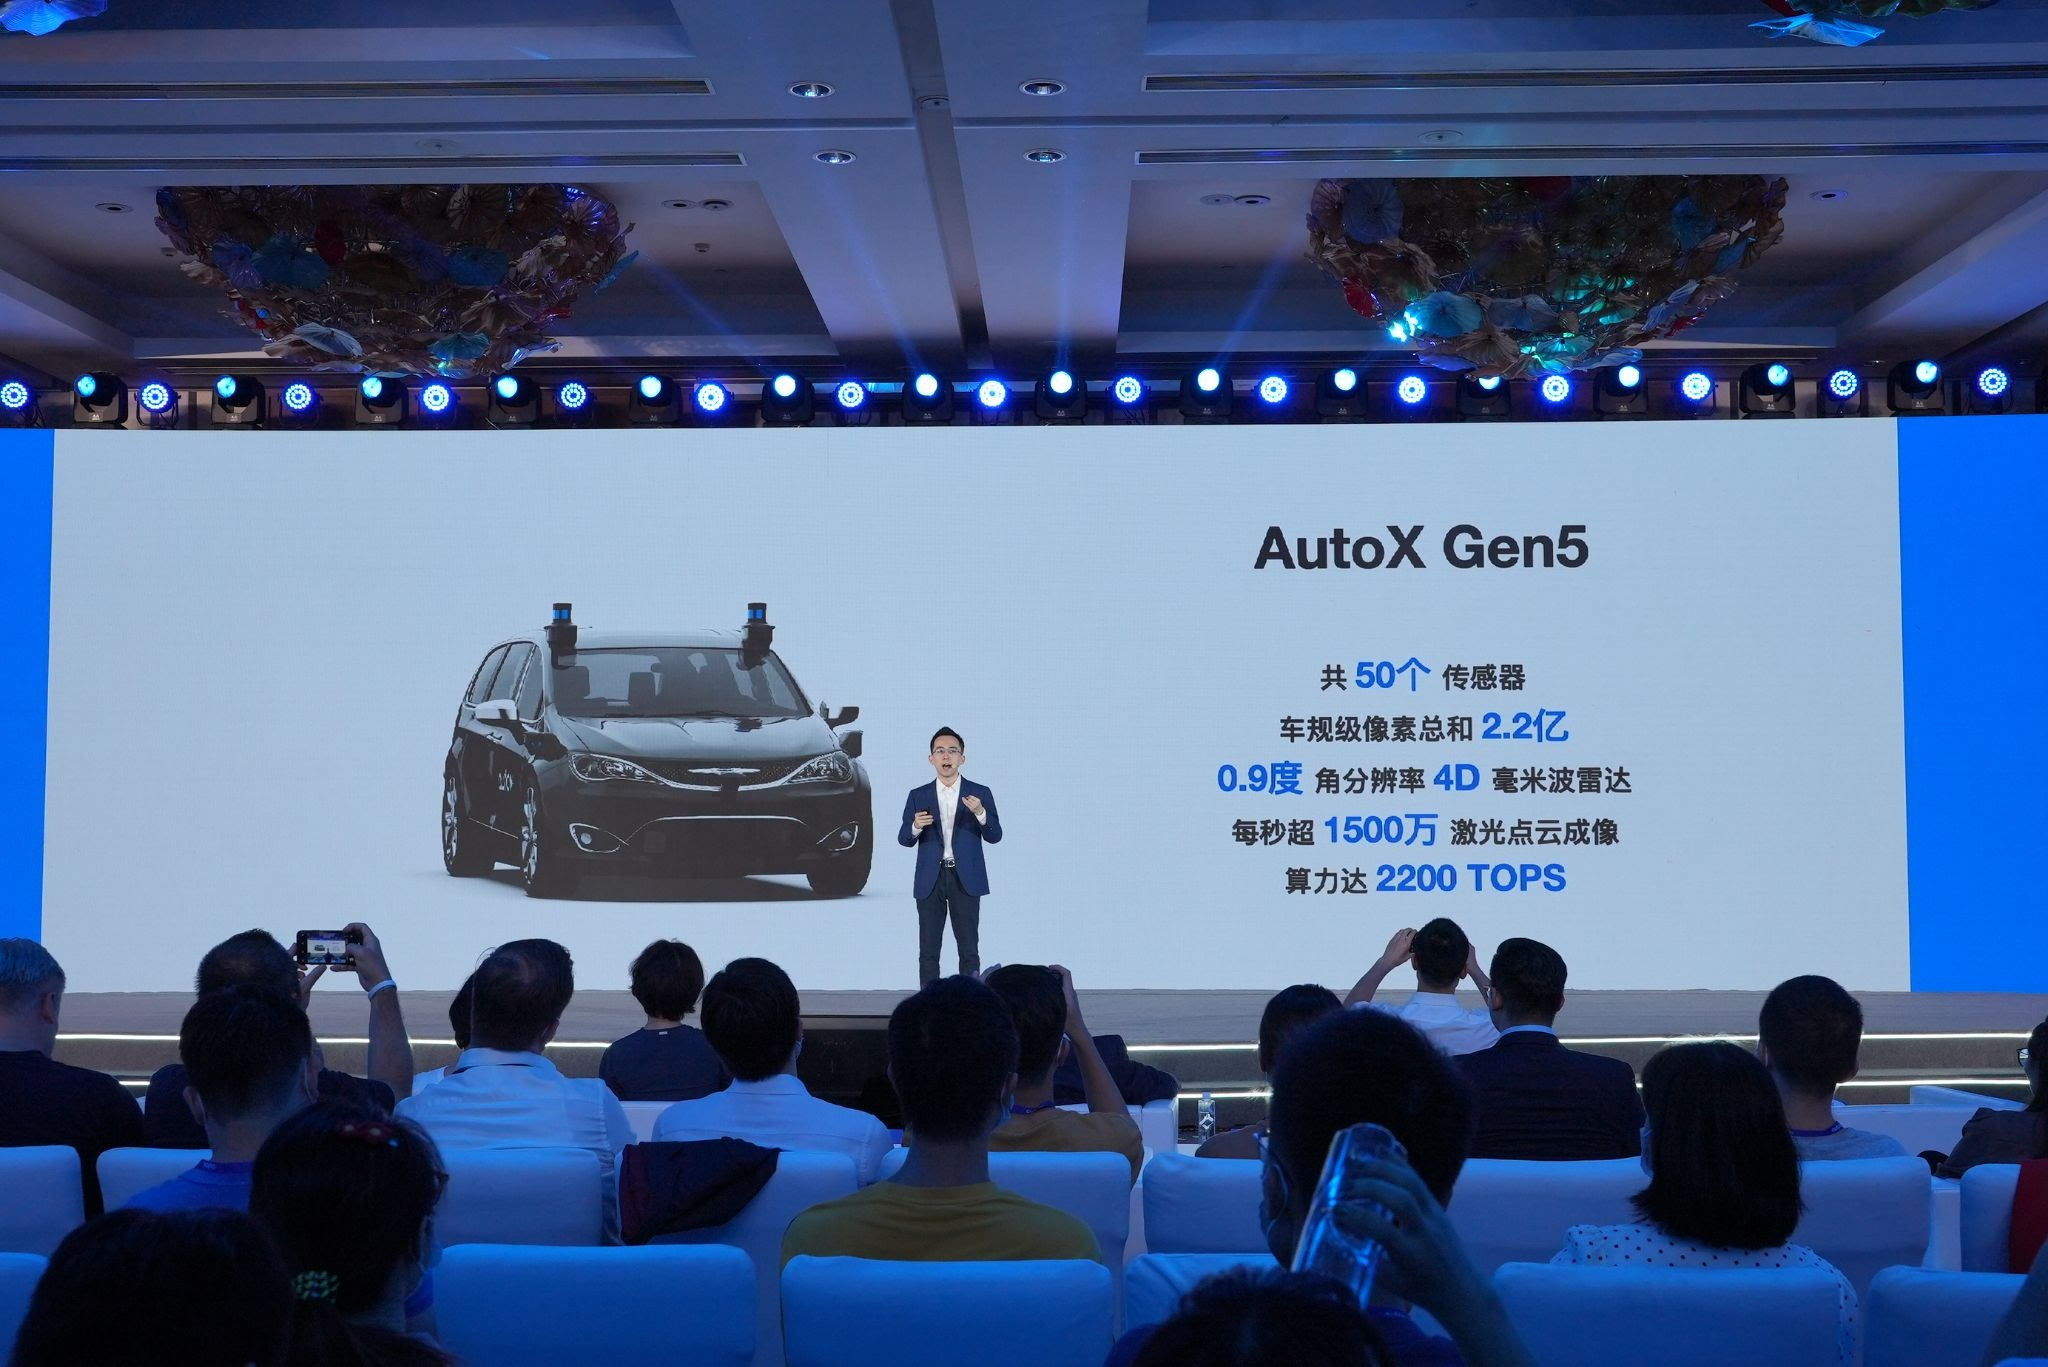 AutoX launches new Gen5 upgrade for its robotaxis.